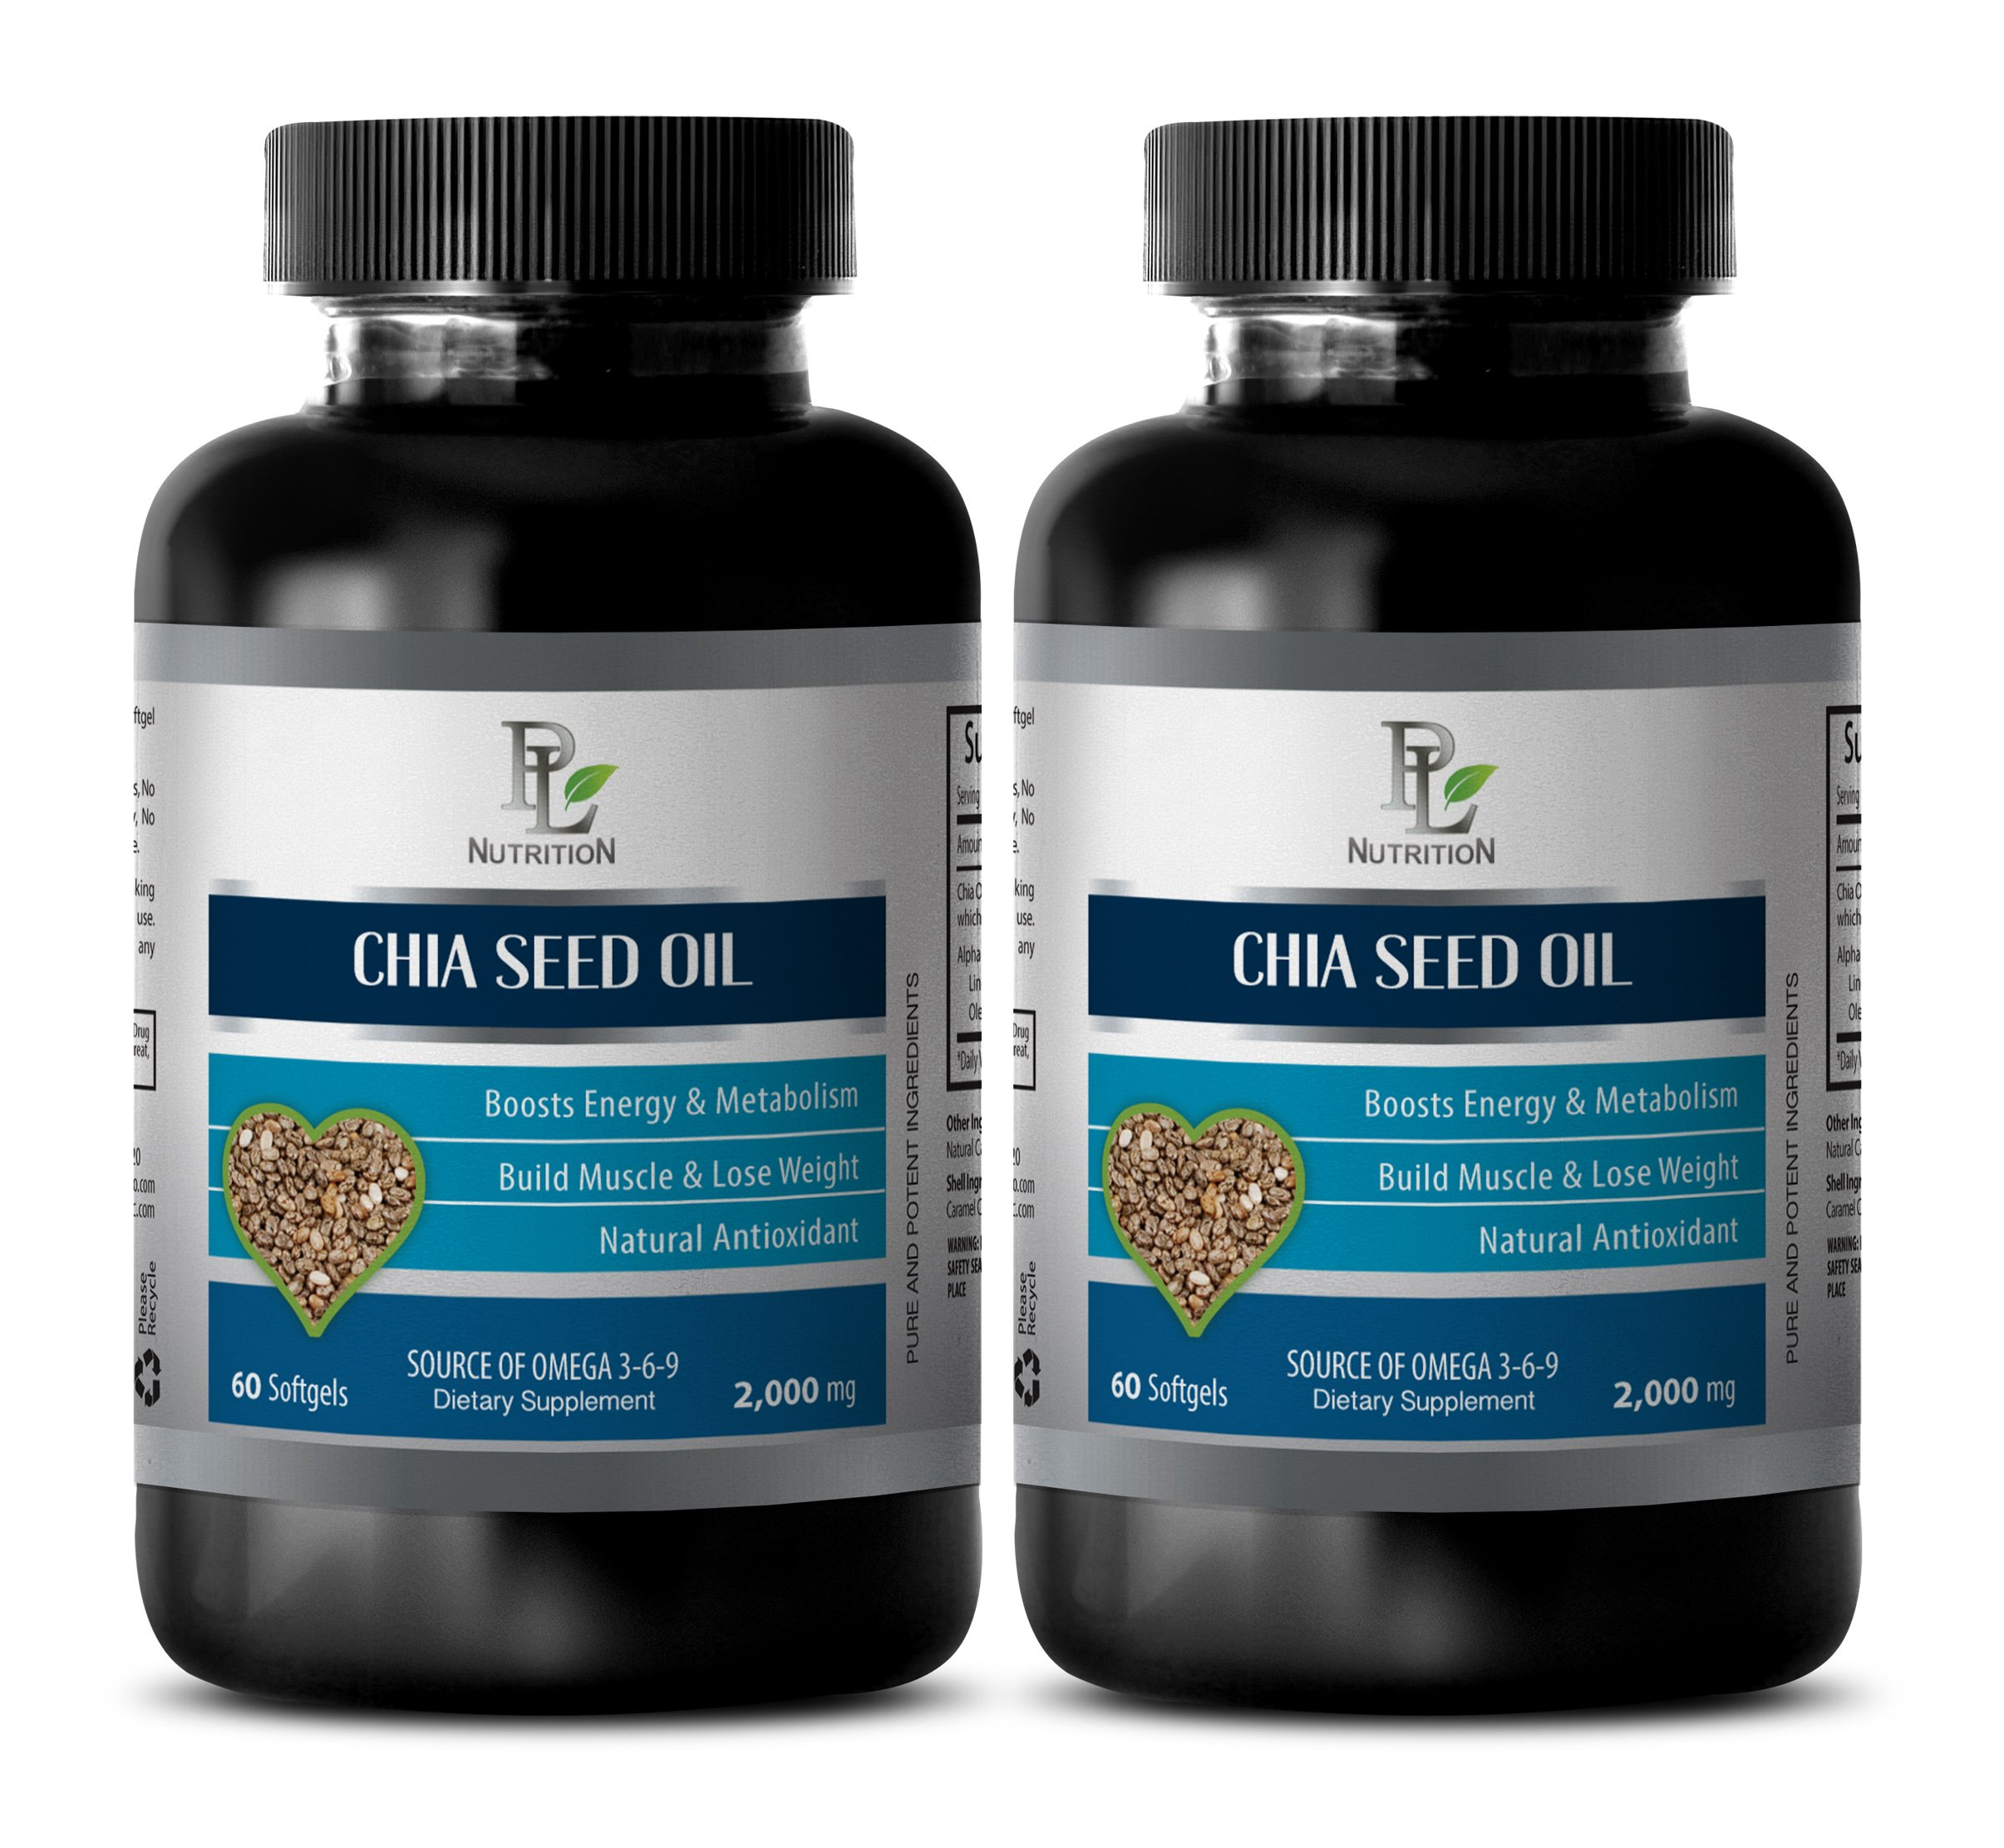 Brain Booster Pills - Chia Seed Oil 2000MG - Source of Omega 3-6-9 - Chia Seeds Bulk - 2 Bottles (120 Softgels)